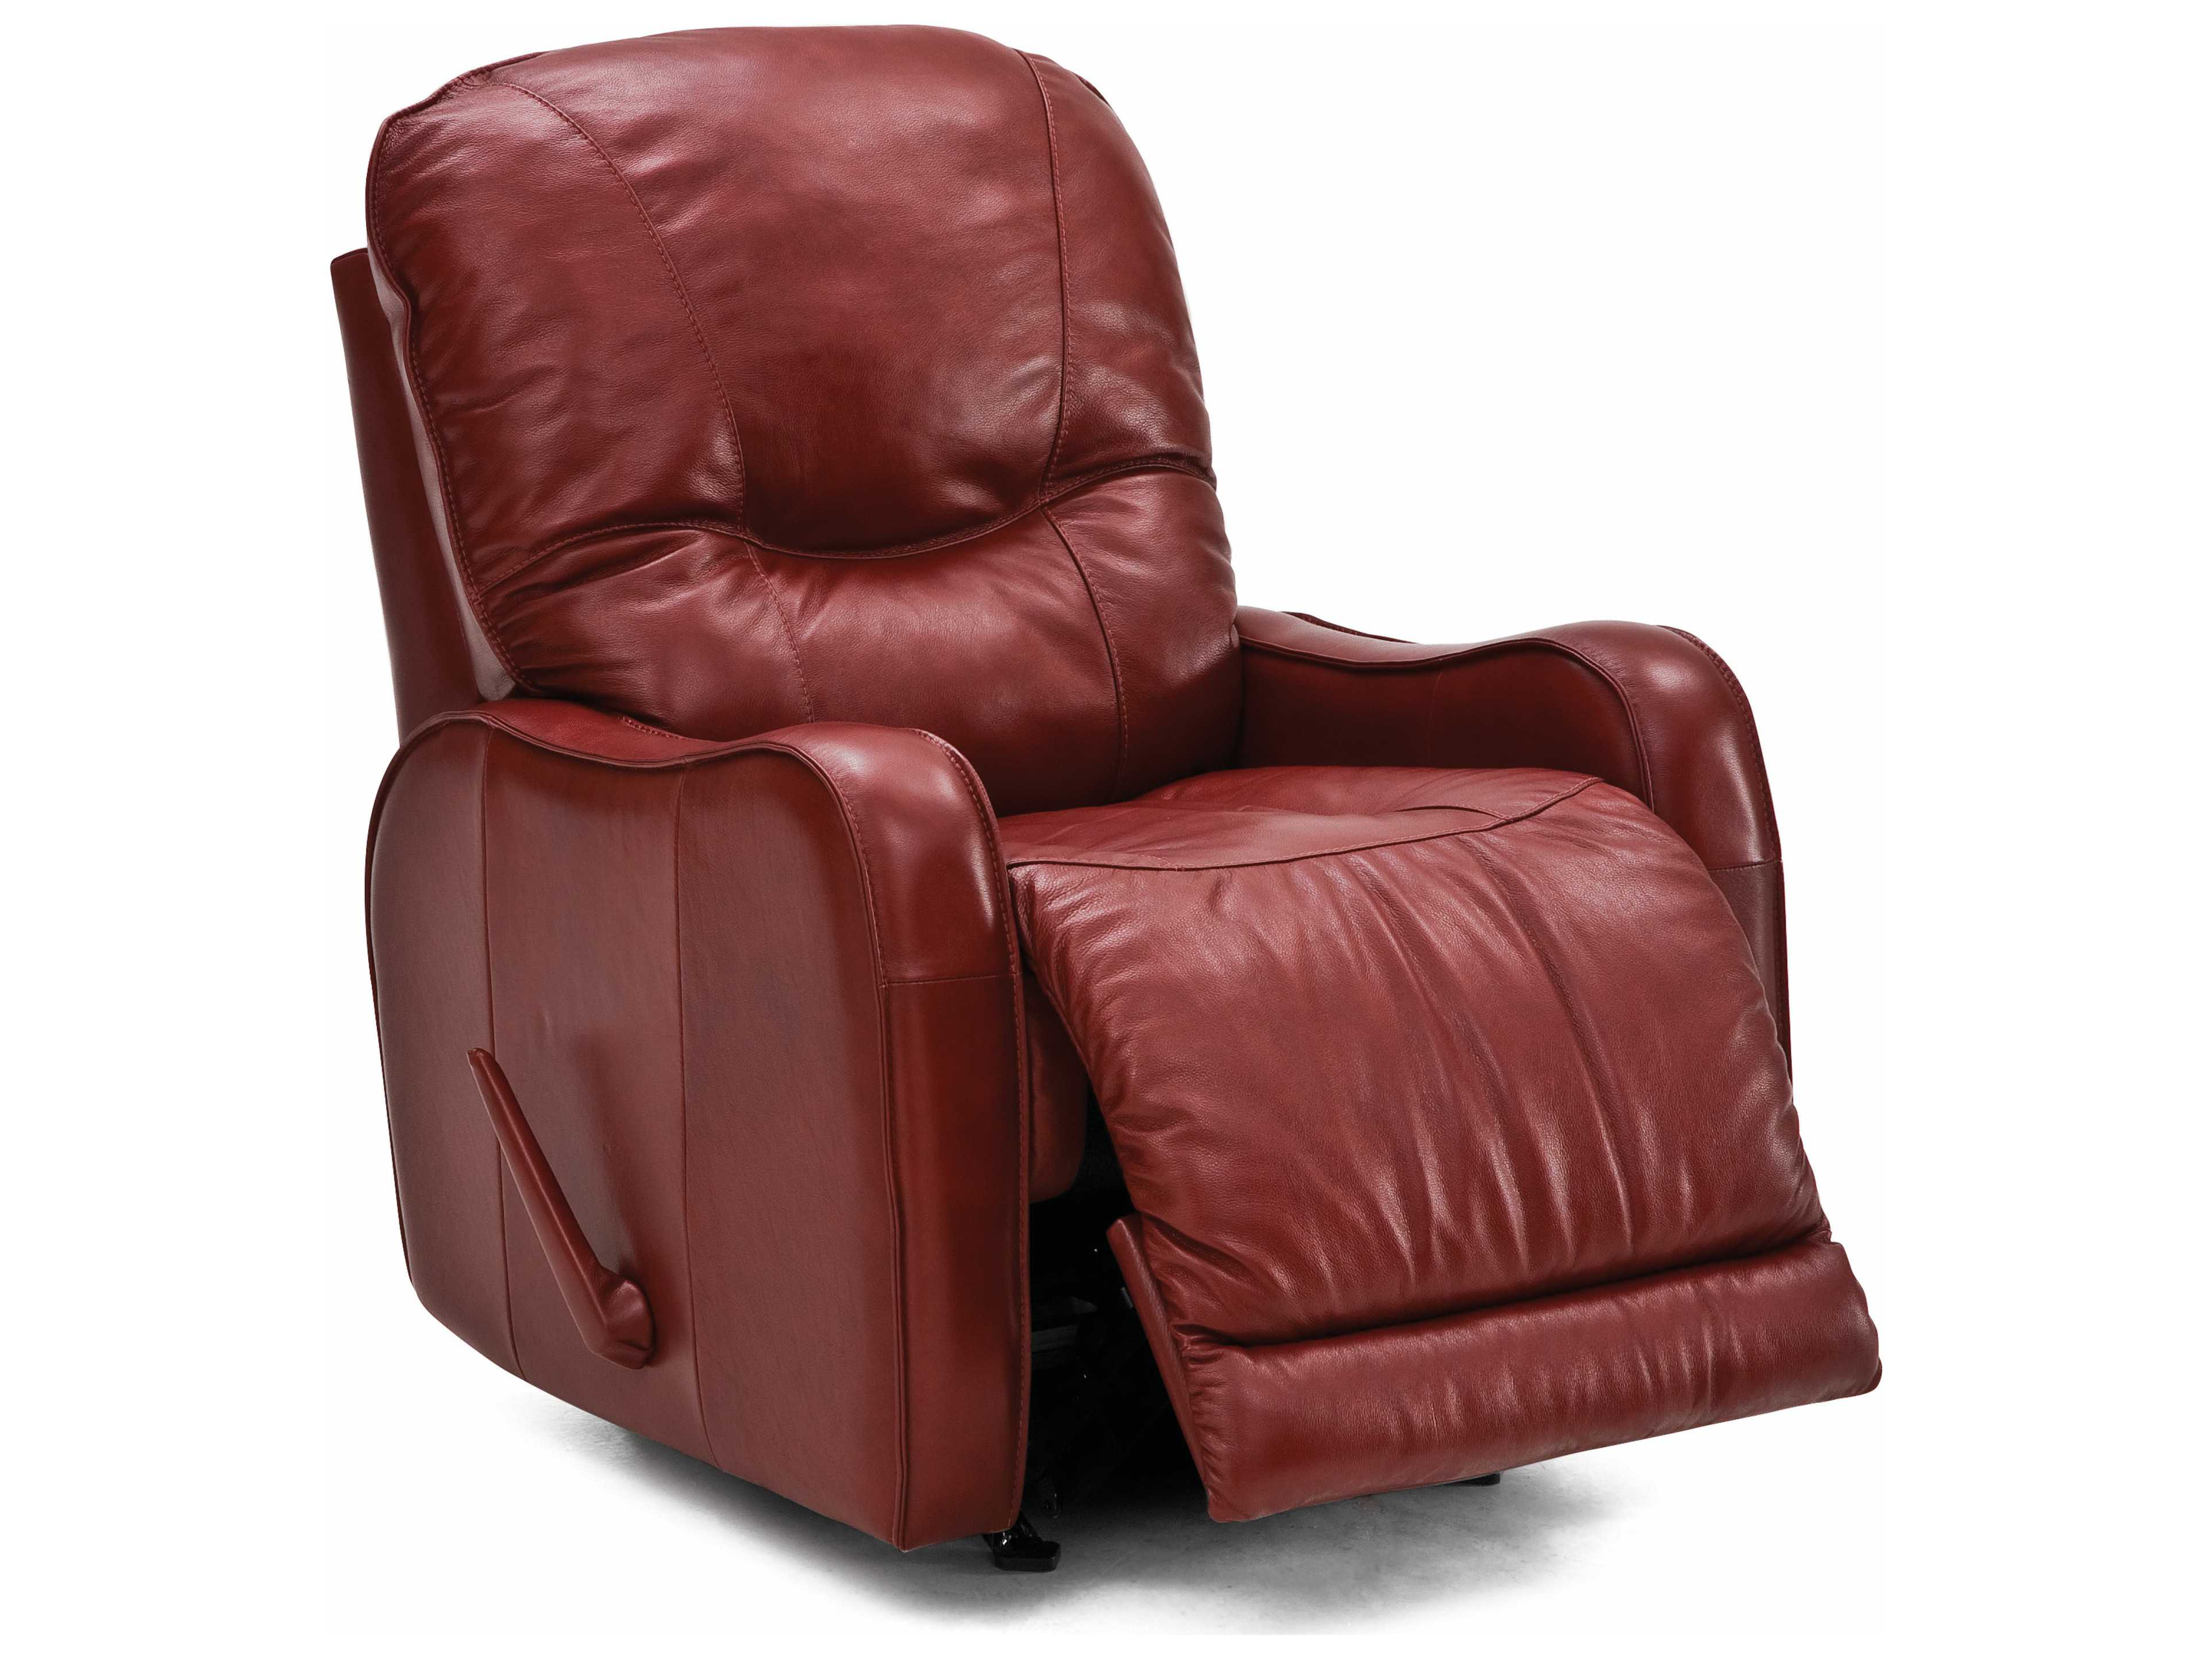 Swivel Rocker Recliner Chair Palliser Yates Swivel Rocker Recliner Chair